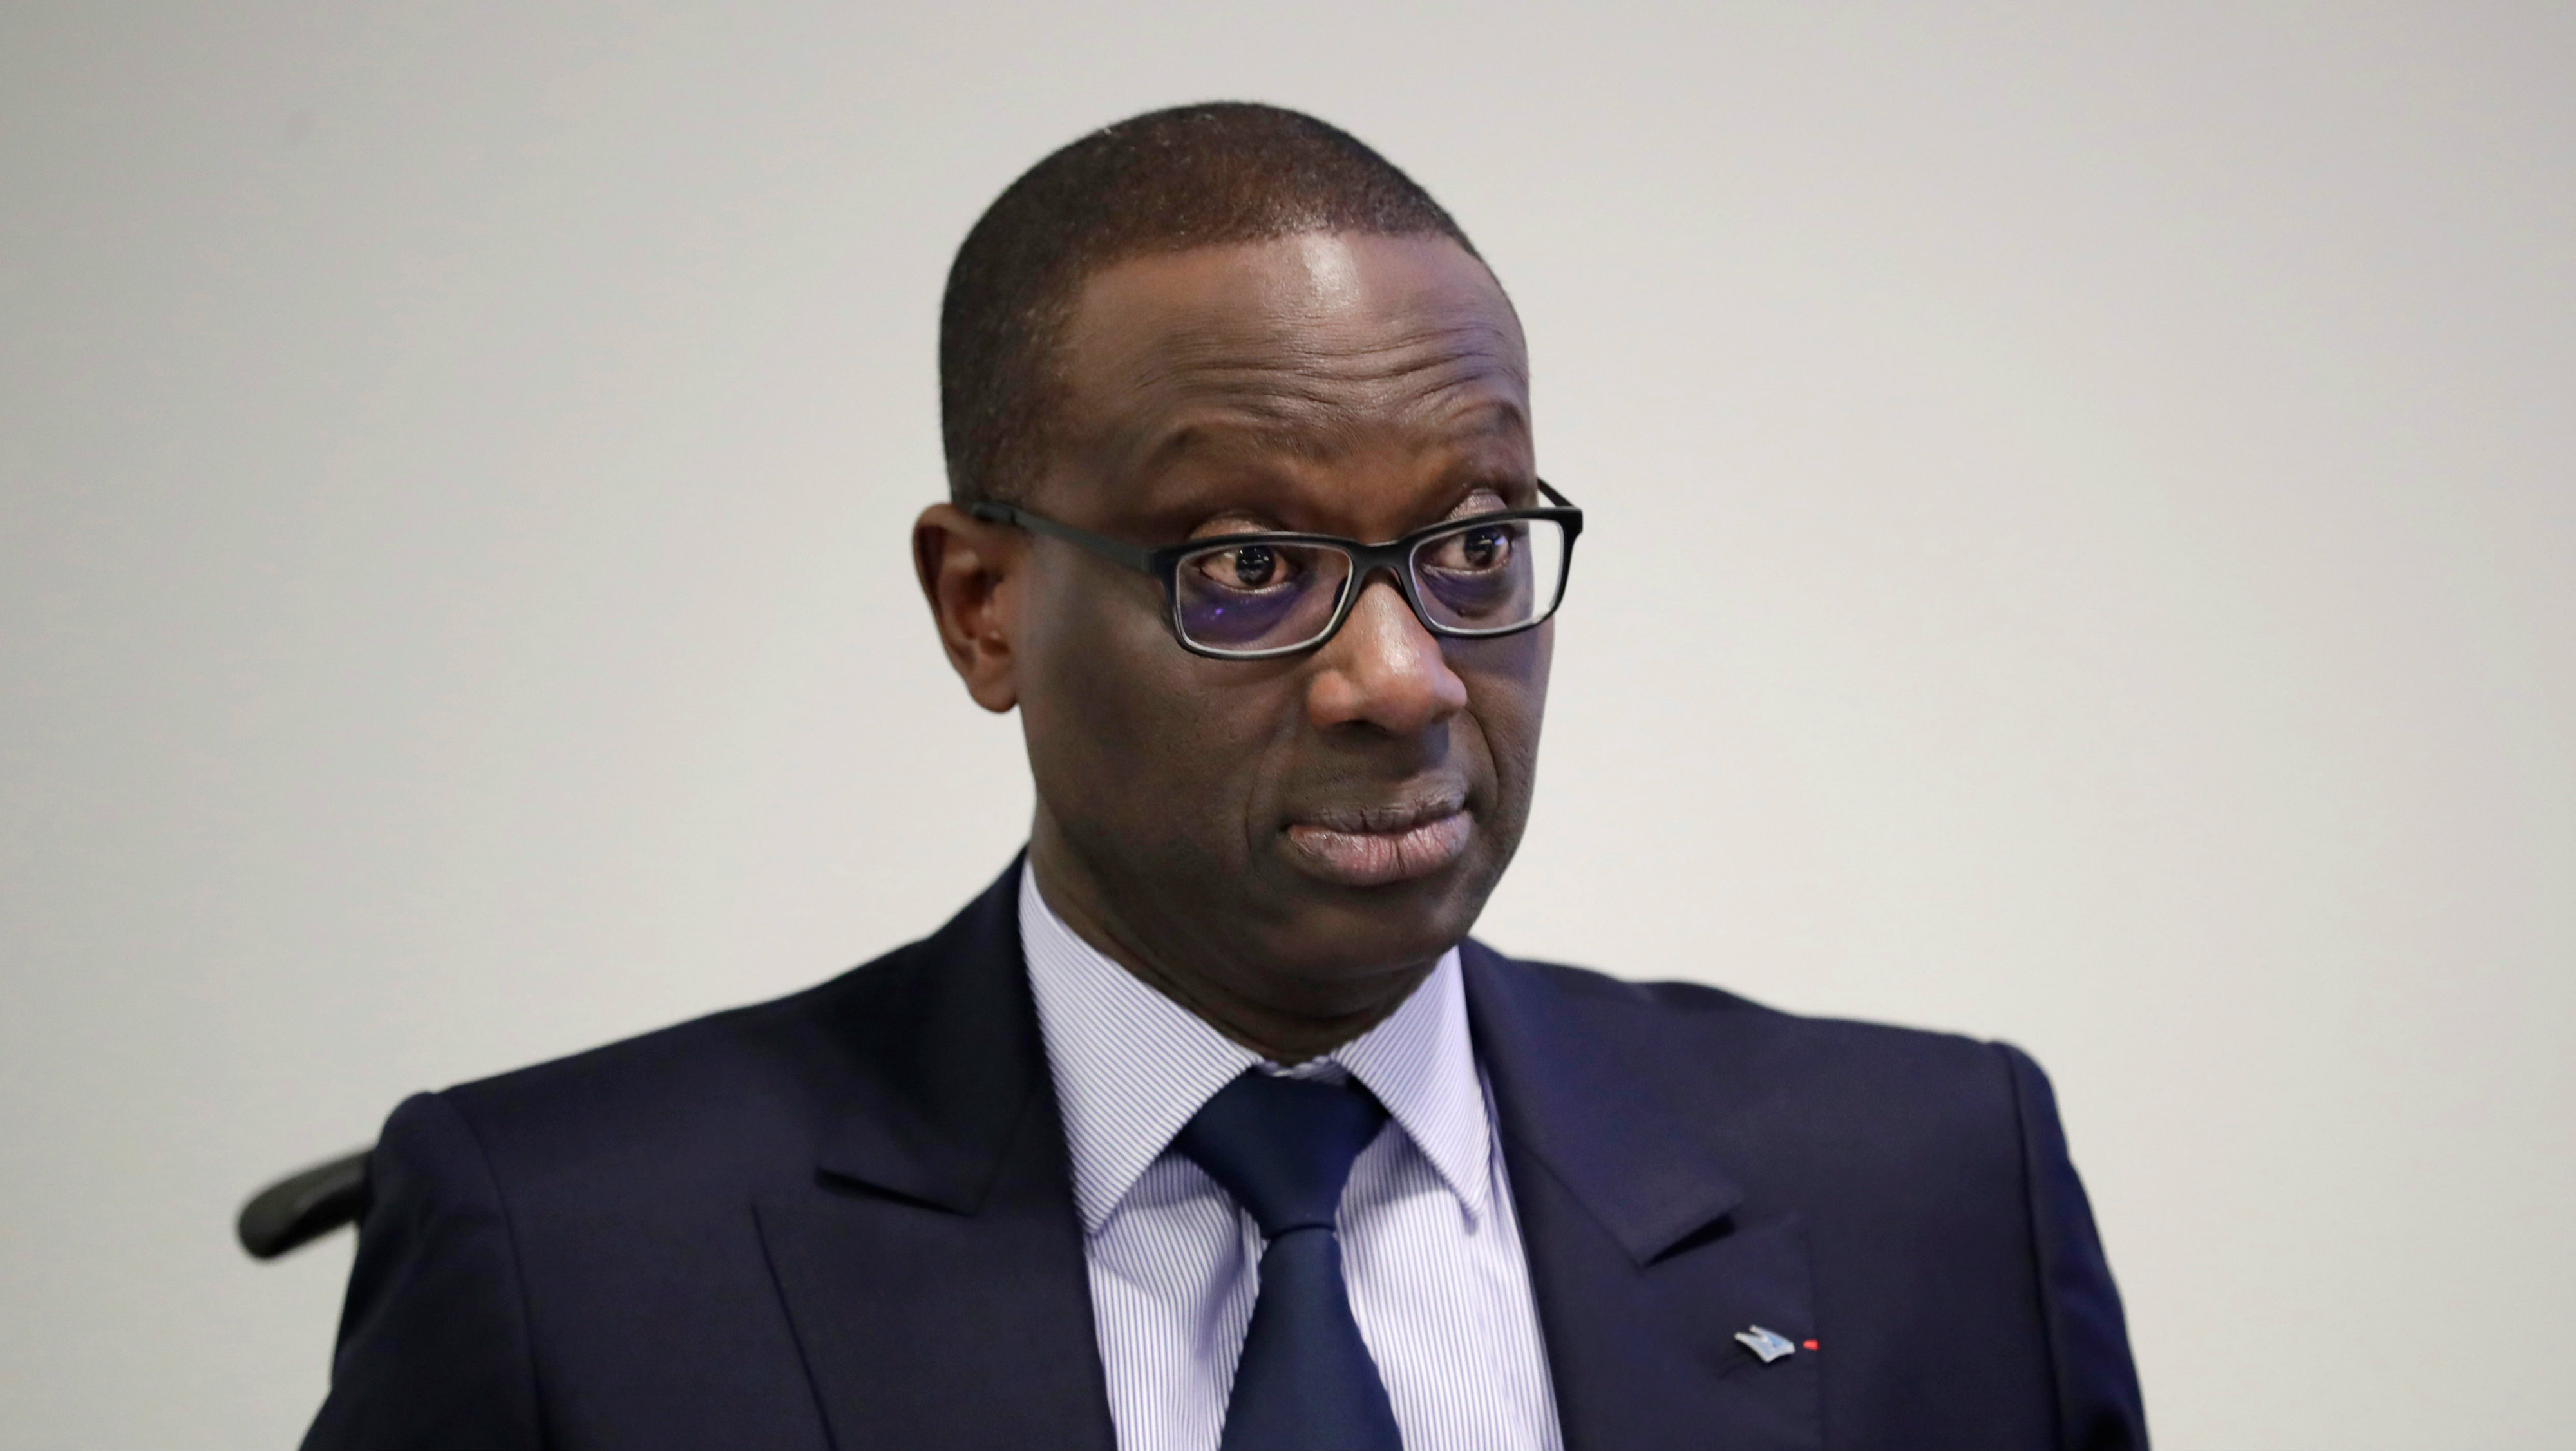 Chief Executive Tidjane Thiam of Swiss bank Credit Suisse awaits a news conference to present the company's full-year results, in Zurich, Switzerland, February 14, 2018.